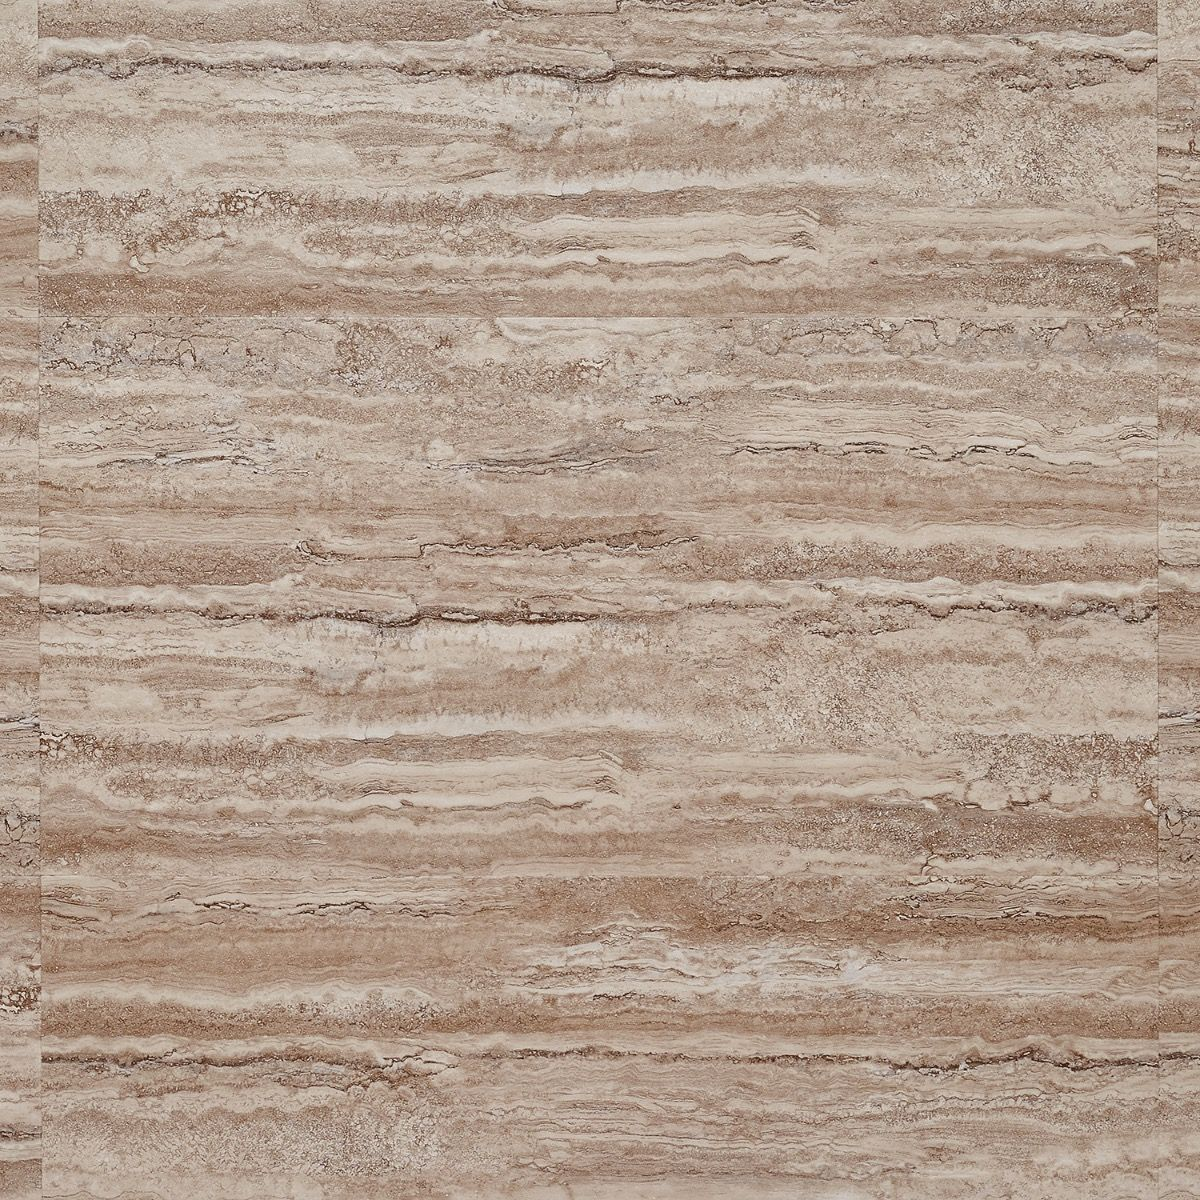 Katone Riverstone Espresso 18x36 Glue Down Luxury Vinyl Tile